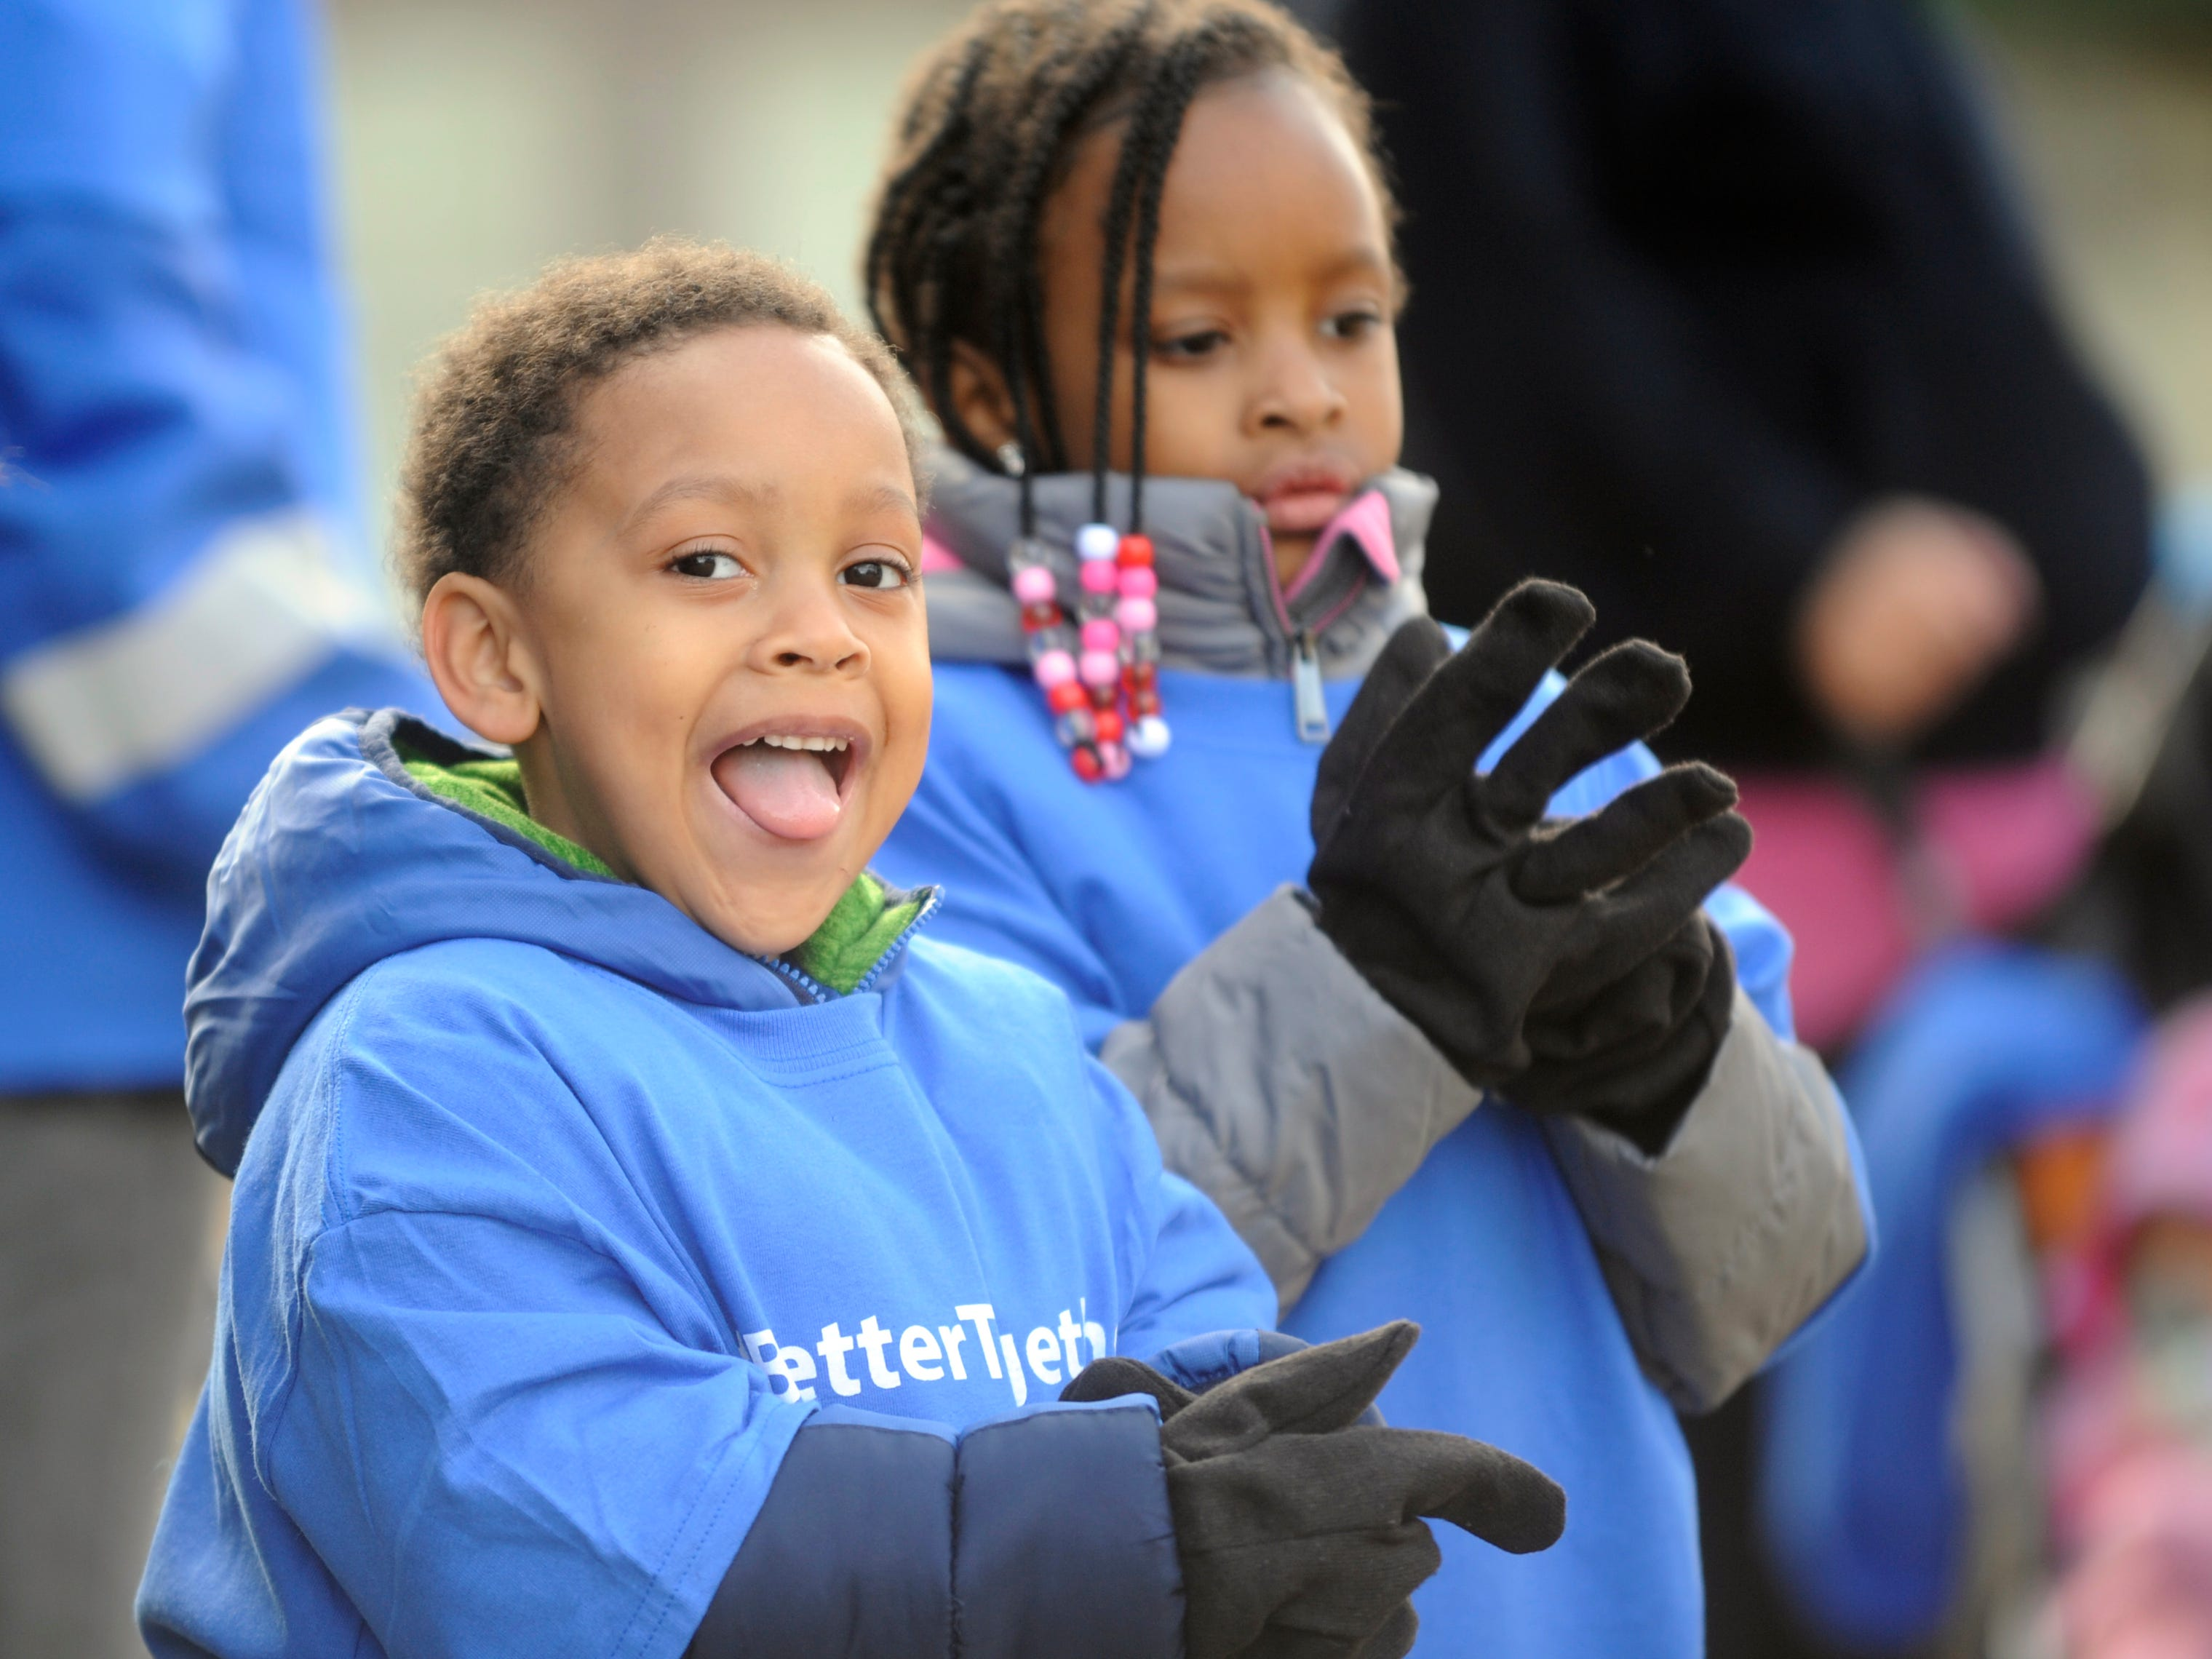 Oakview Apartments residents Jibril Alsobrook, 4, and sister Saleya, 6, get ready to put away trash during a community clean up event in Millville on Thursday, November 8, 2018.